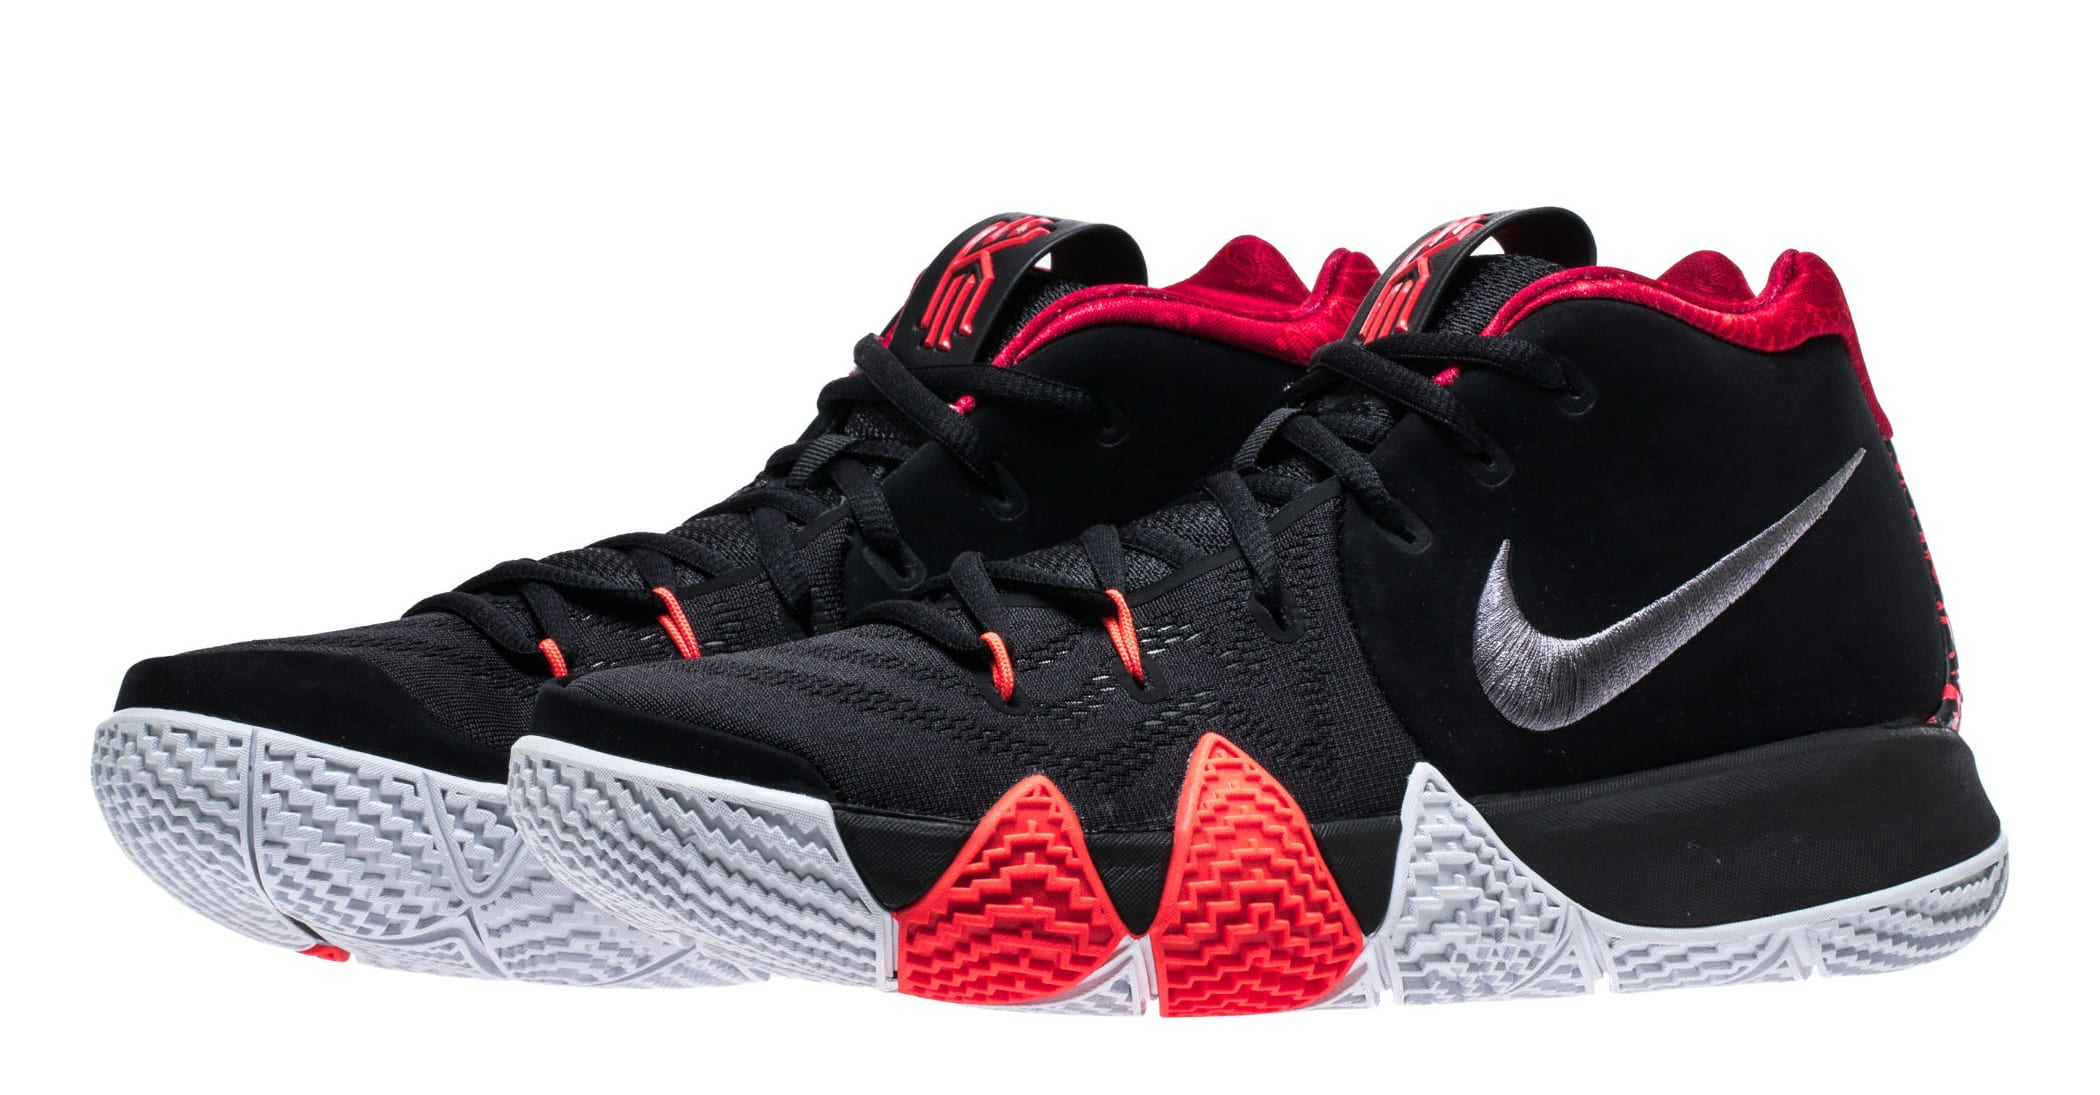 Nike Kyrie 4 Black Grey White Shoes For Women